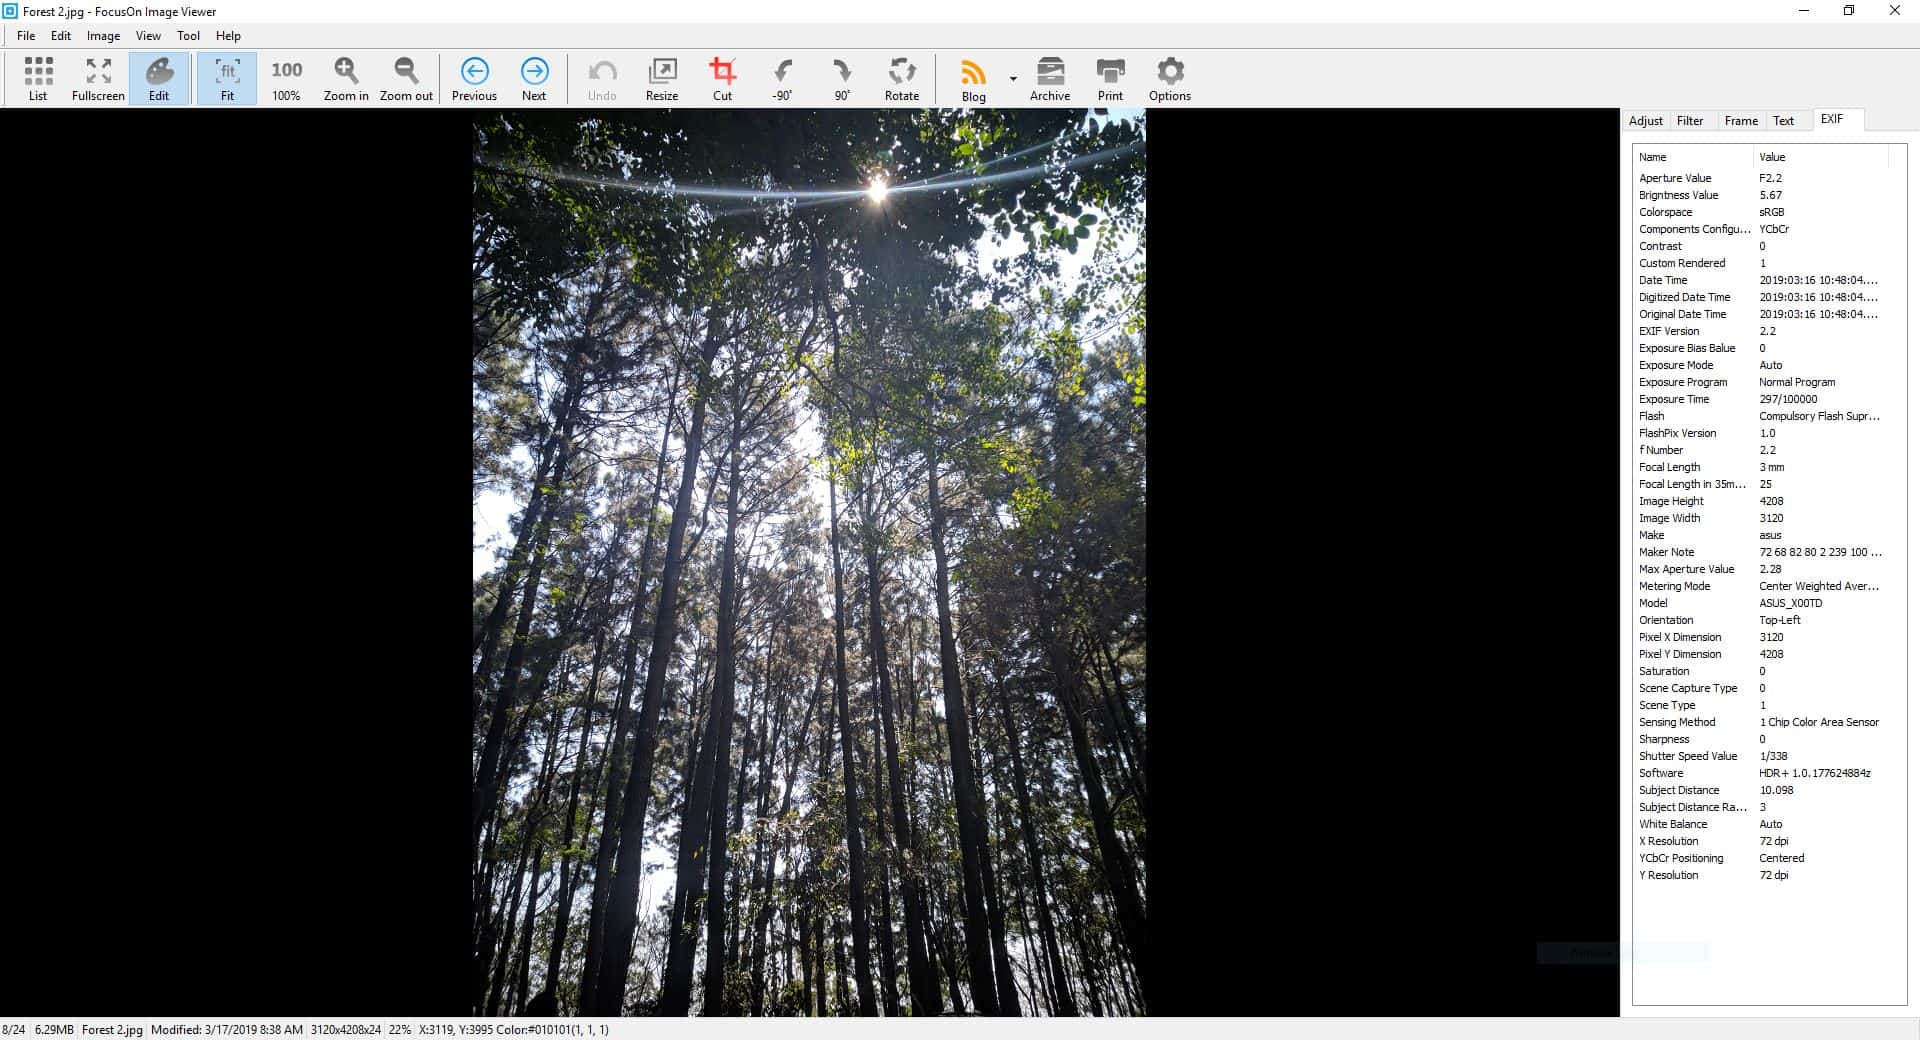 FocusOn Image Viewer editor